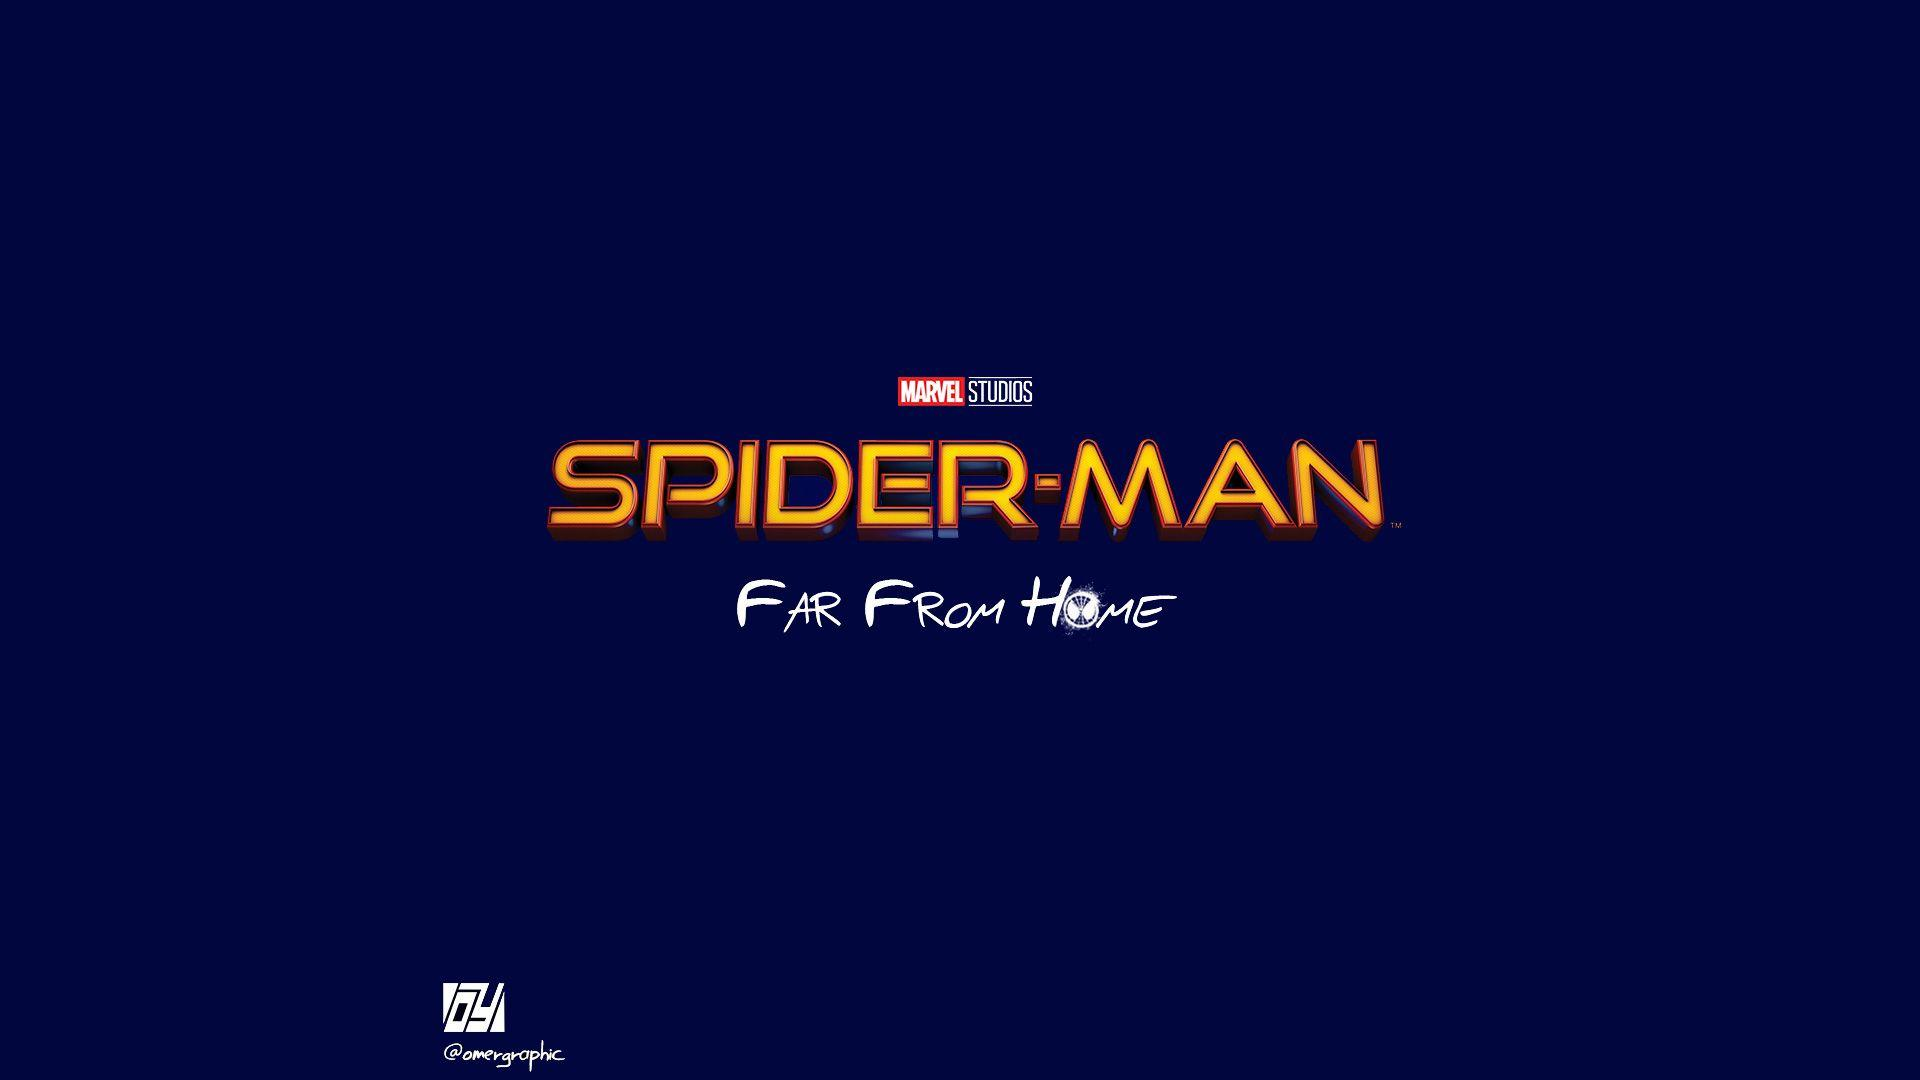 Spiderman Far From Home Movie Logo, HD Movies, 4k Wallpapers, Image